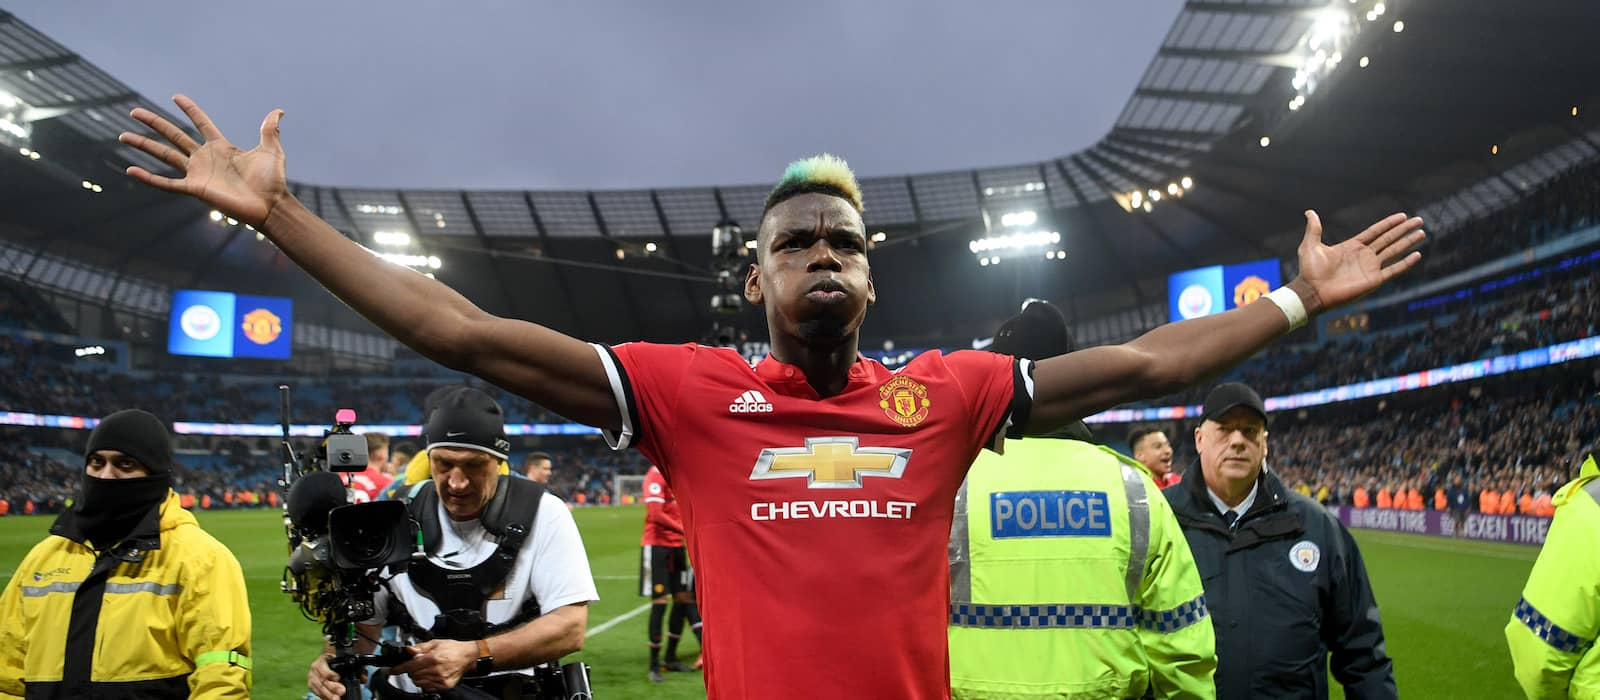 Gordan Strachan: Paul Pogba needs to stop messing around on social media